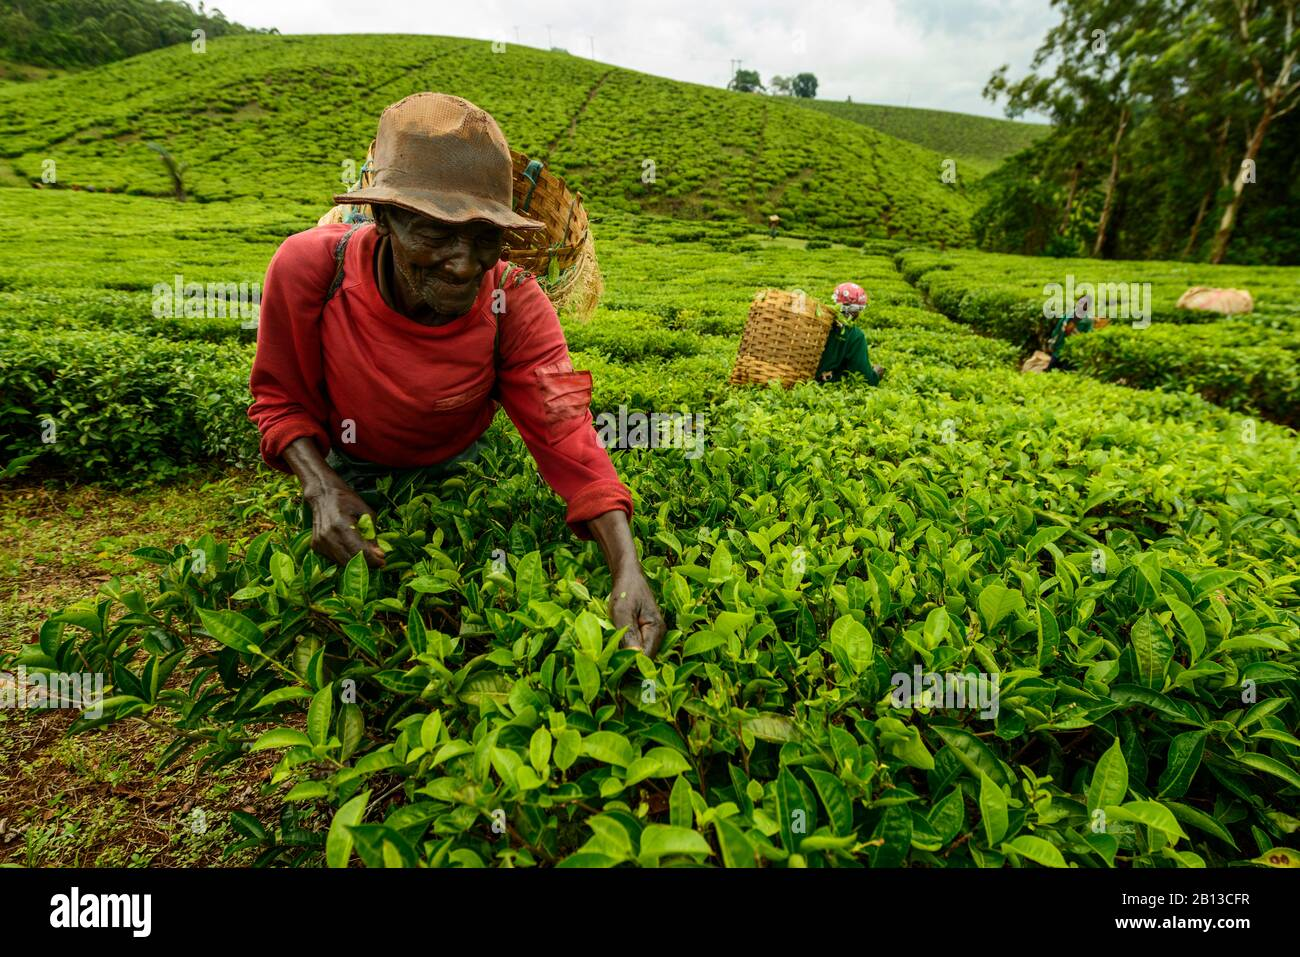 Tea Plant High Resolution Stock Photography and Images - Alamy